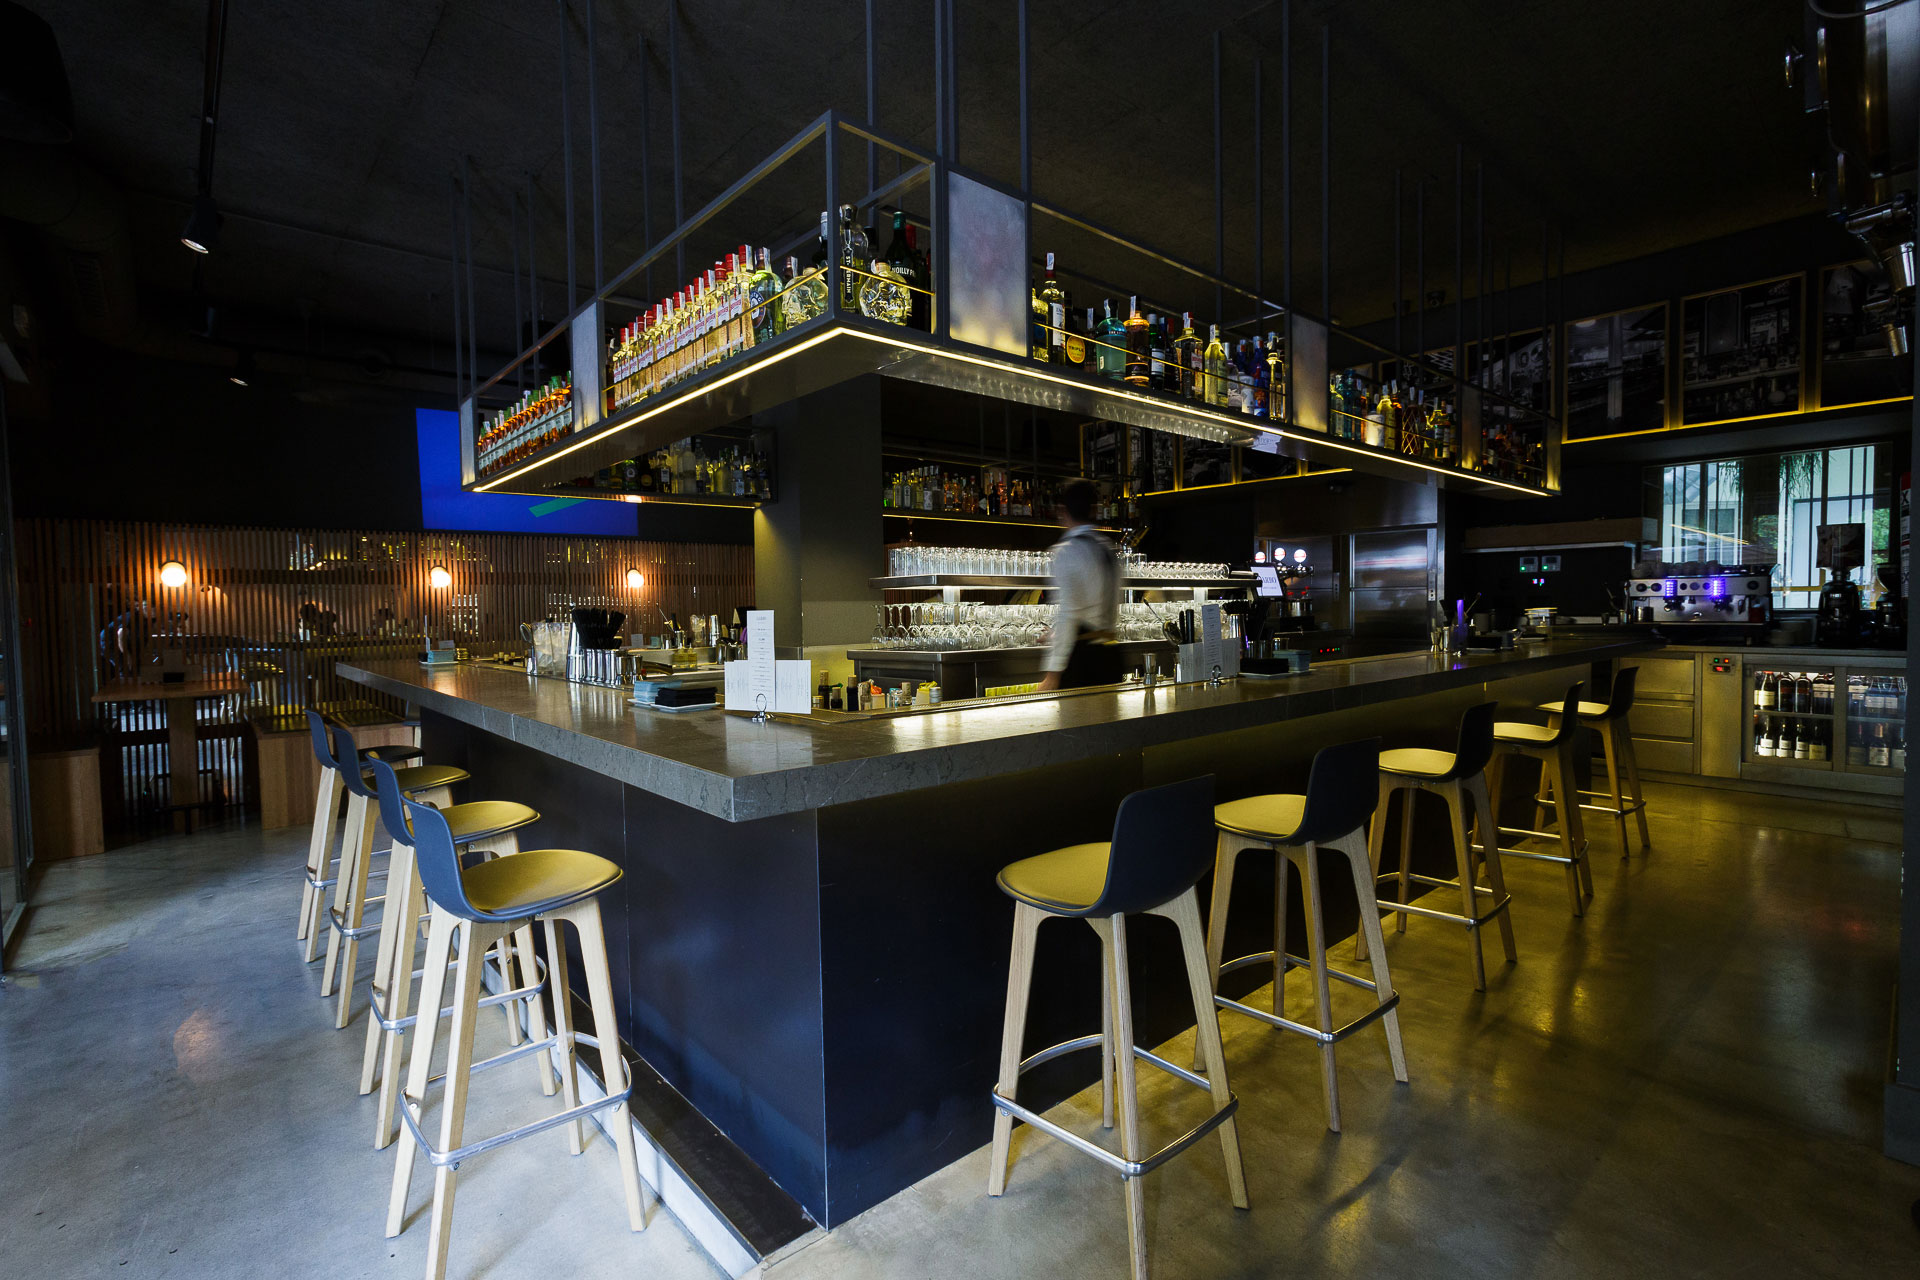 garbo bar gentlebar lottus wood enea design